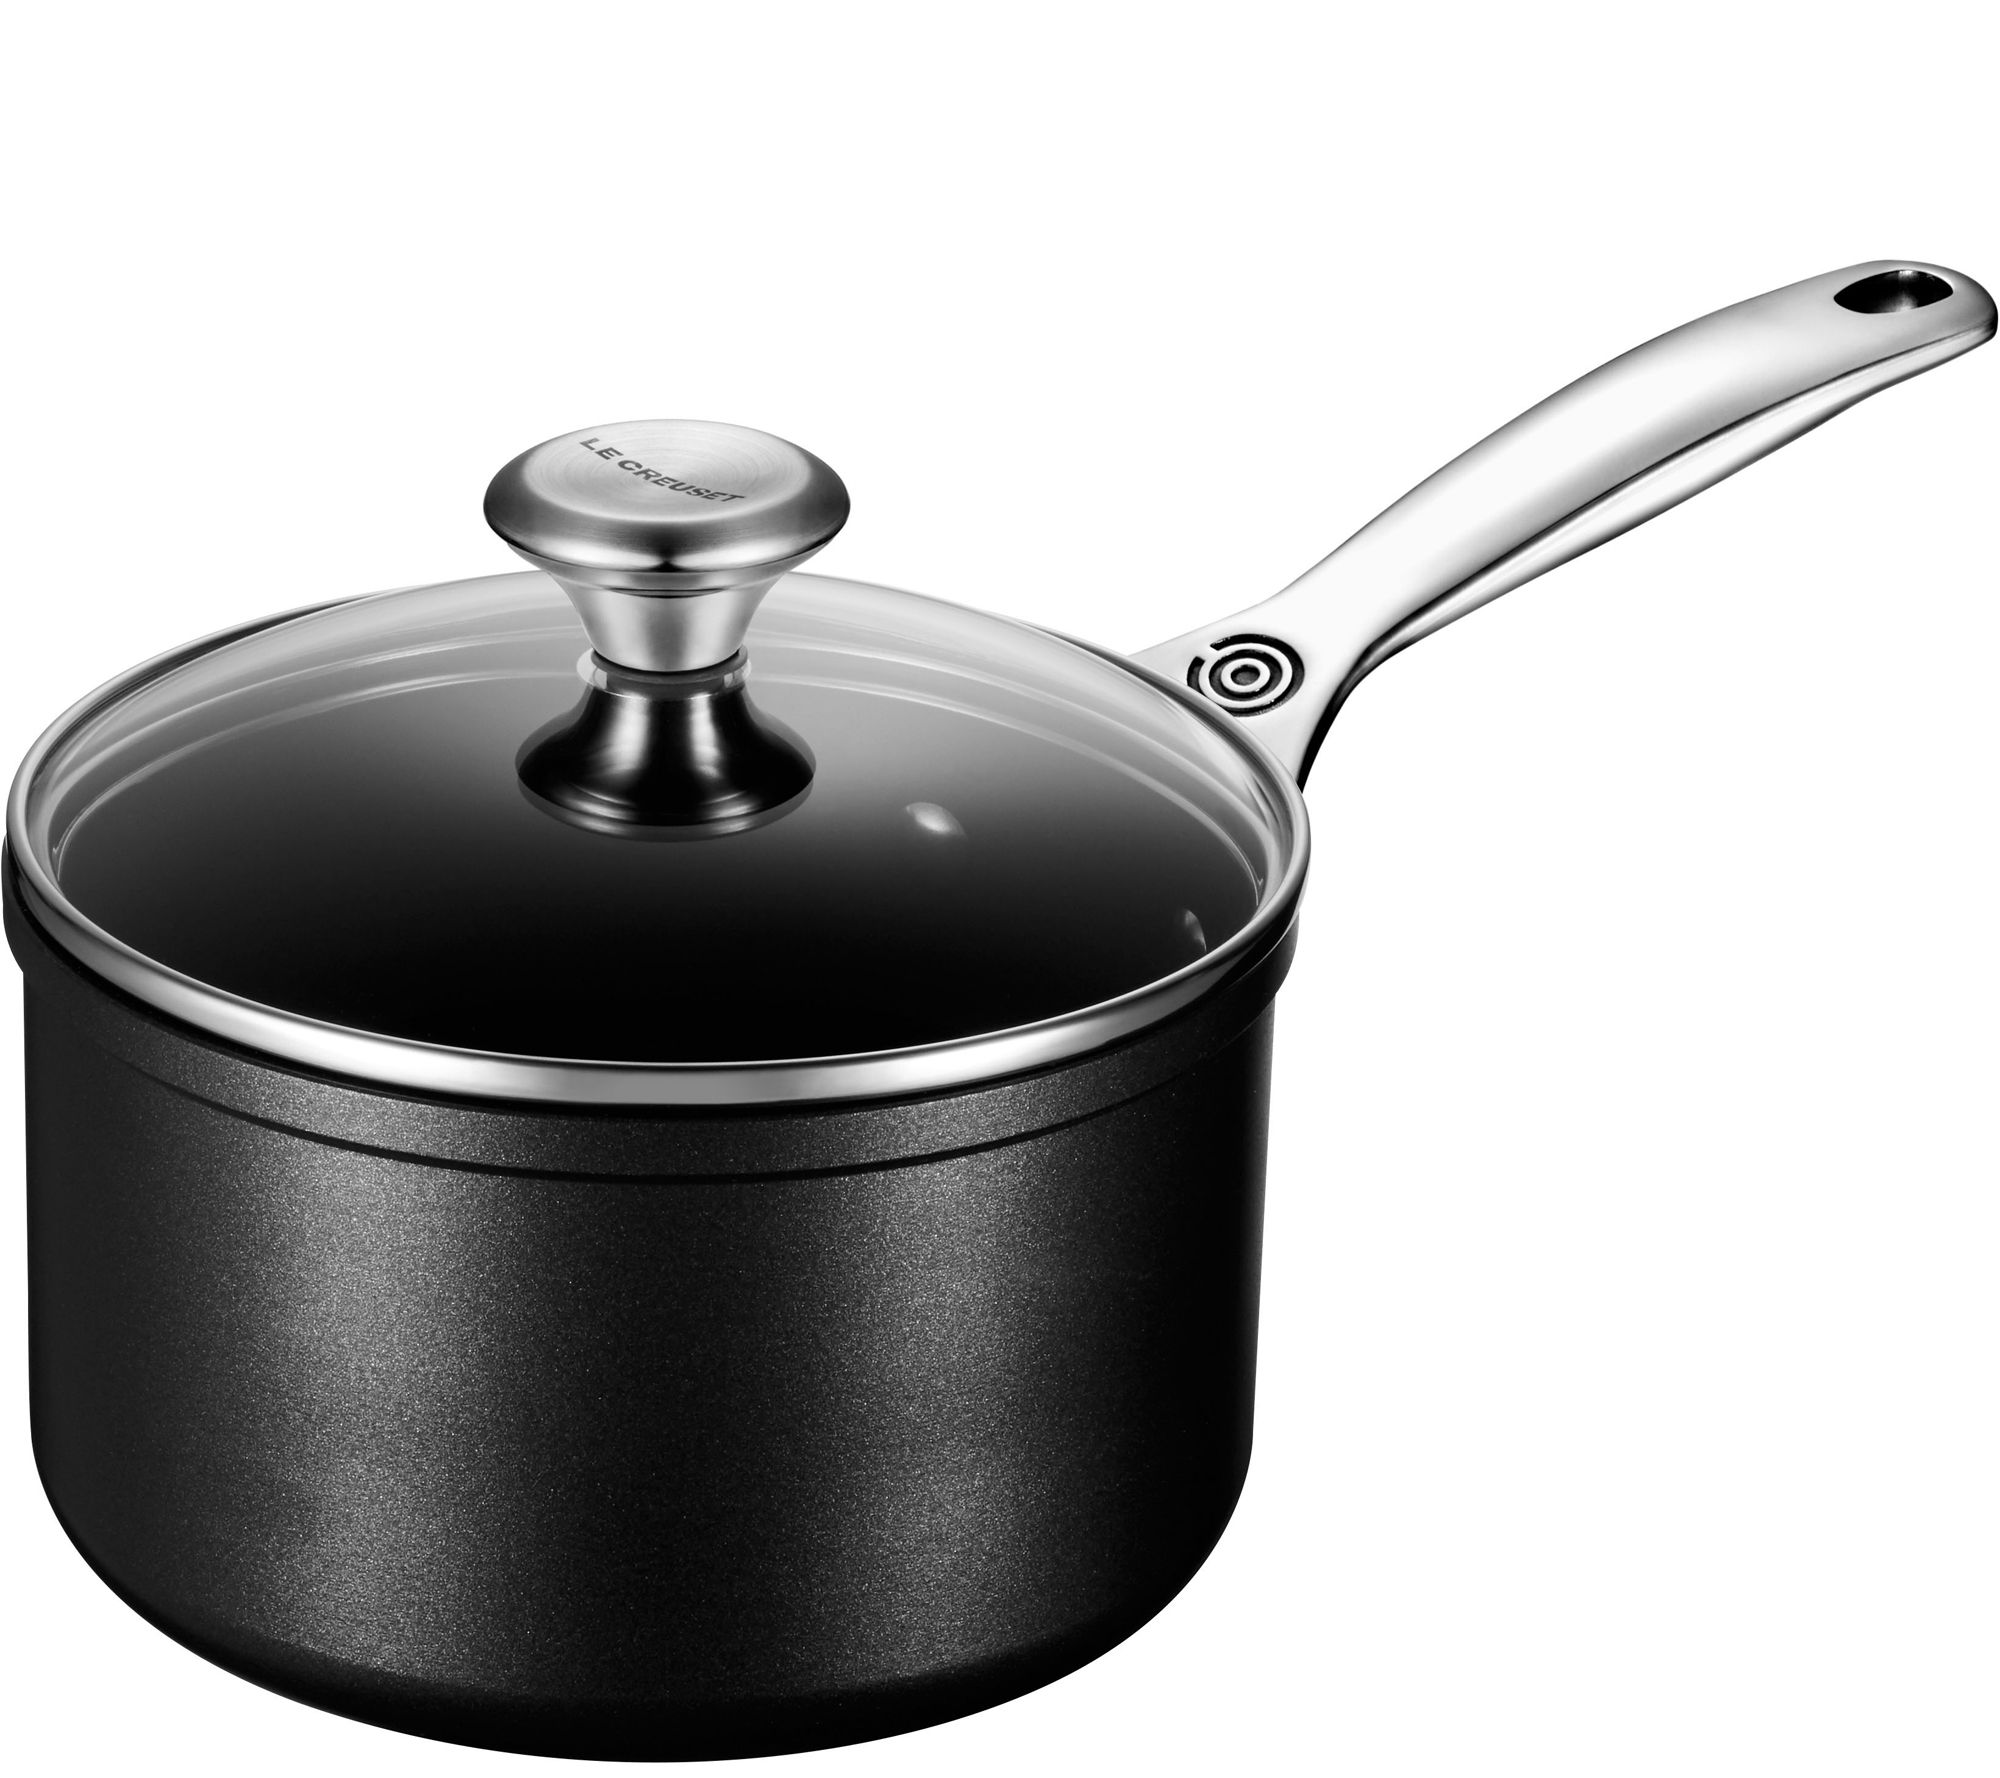 le creuset nonstick 2 qt saucepan with glass lid. Black Bedroom Furniture Sets. Home Design Ideas